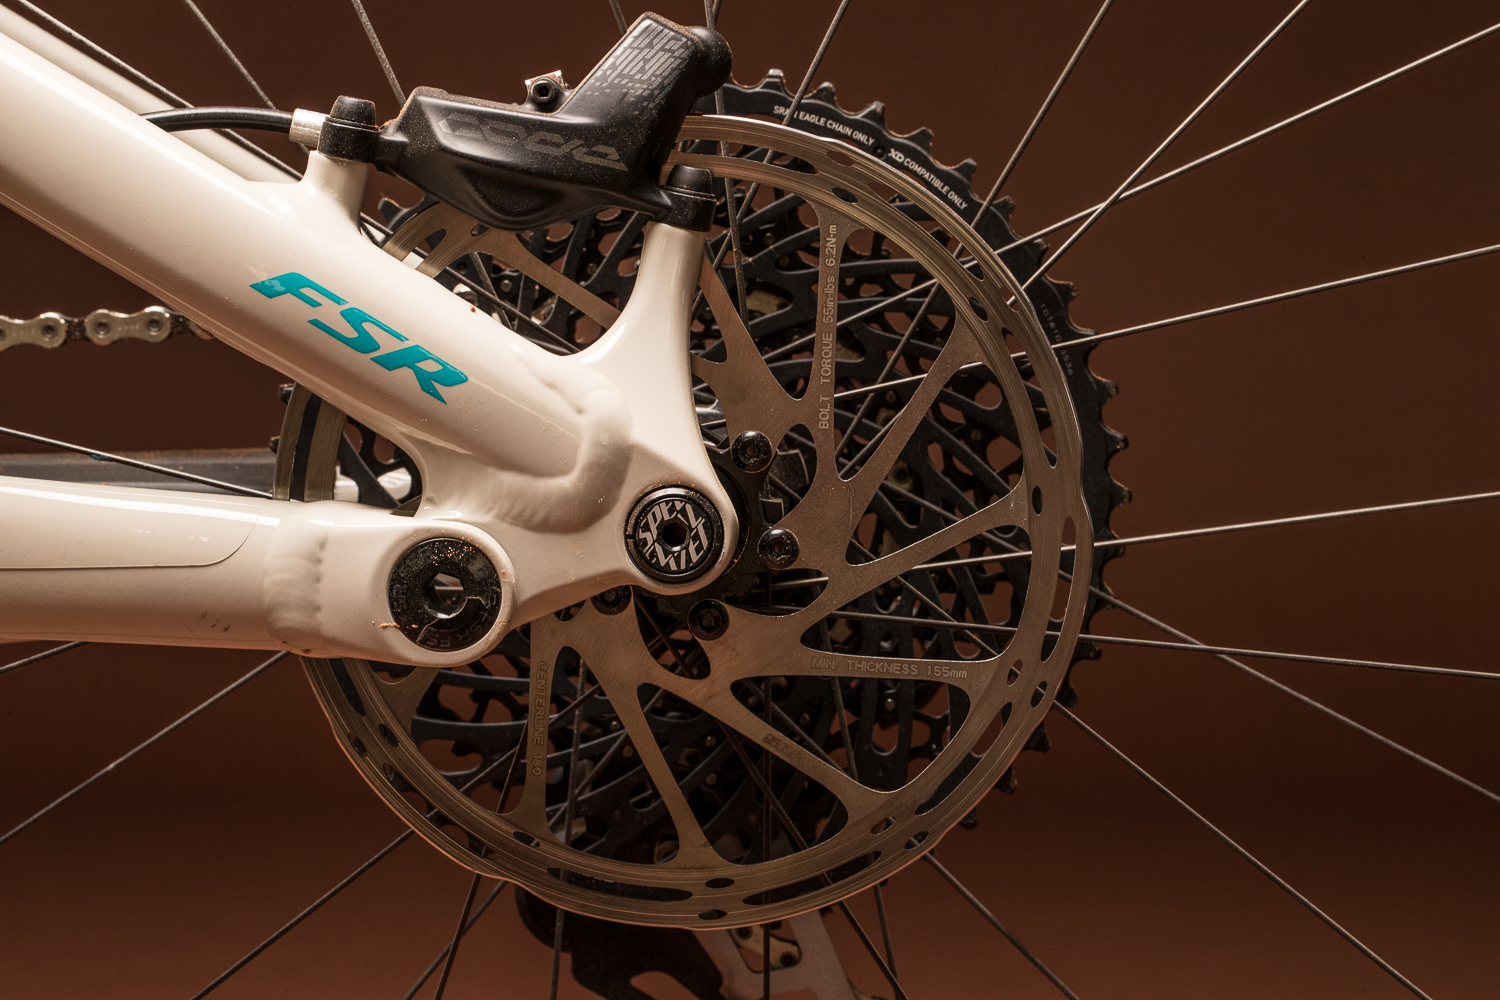 Review: Specialized Enduro Elite 29 | Bible of Bike Tests | BIKE